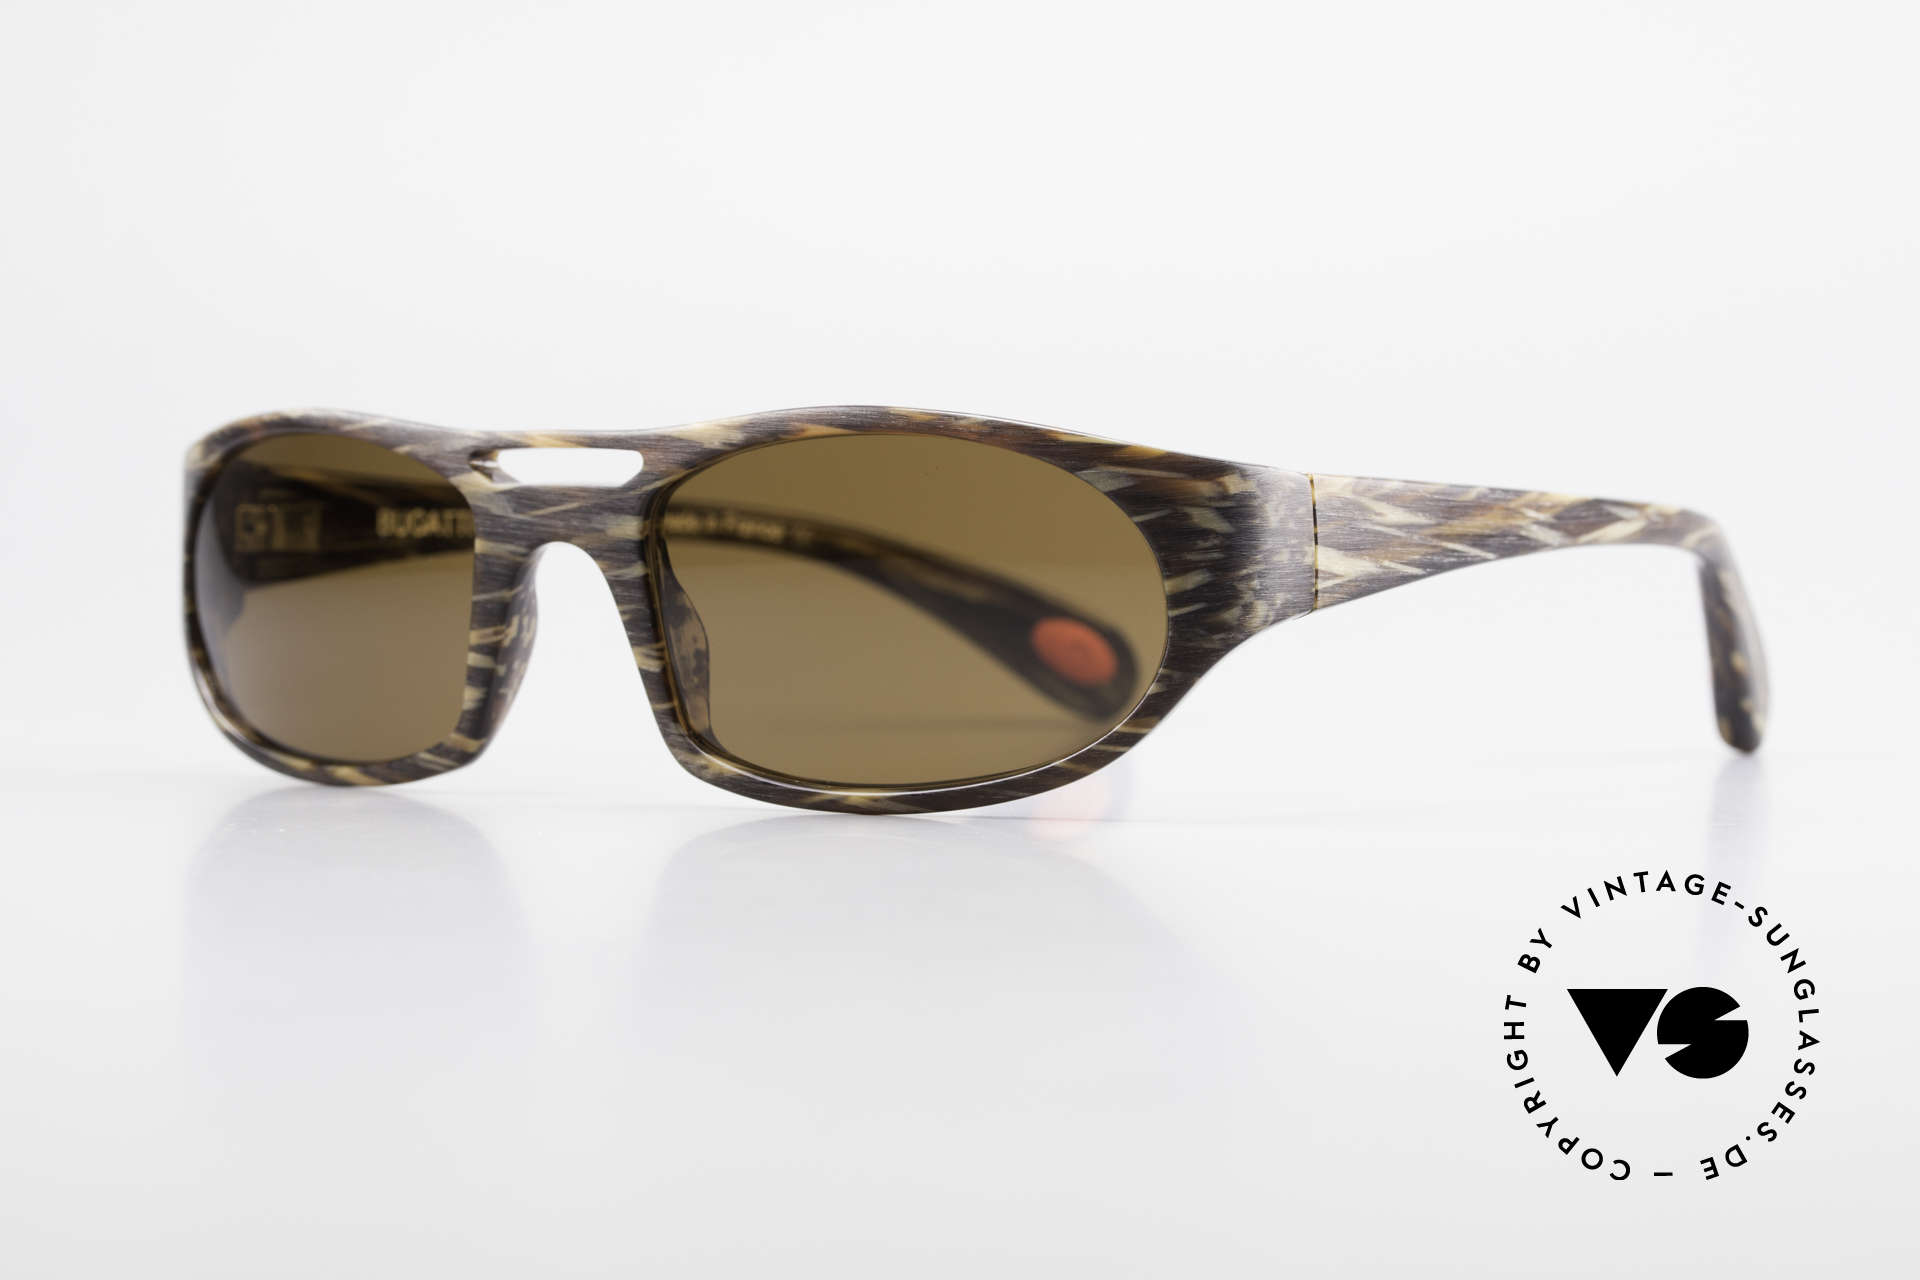 Bugatti 220 Rare Designer Luxury Shades, 1. class wearing comfort due to spring hinges, Made for Men